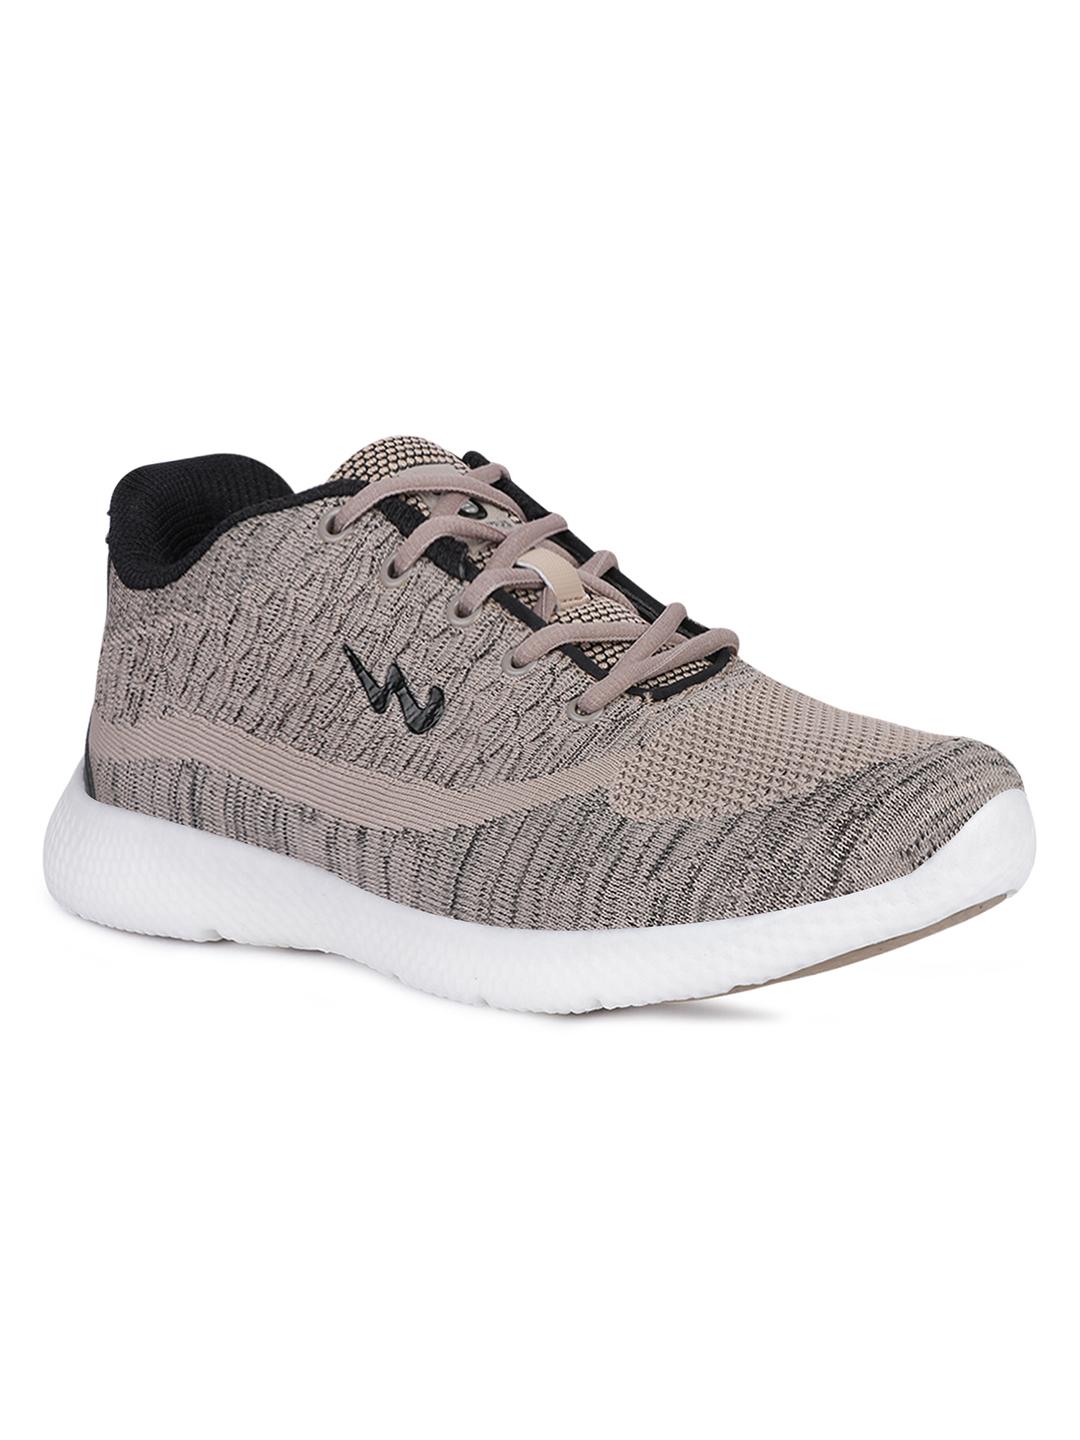 Campus Shoes | Beige Crest Running Shoes